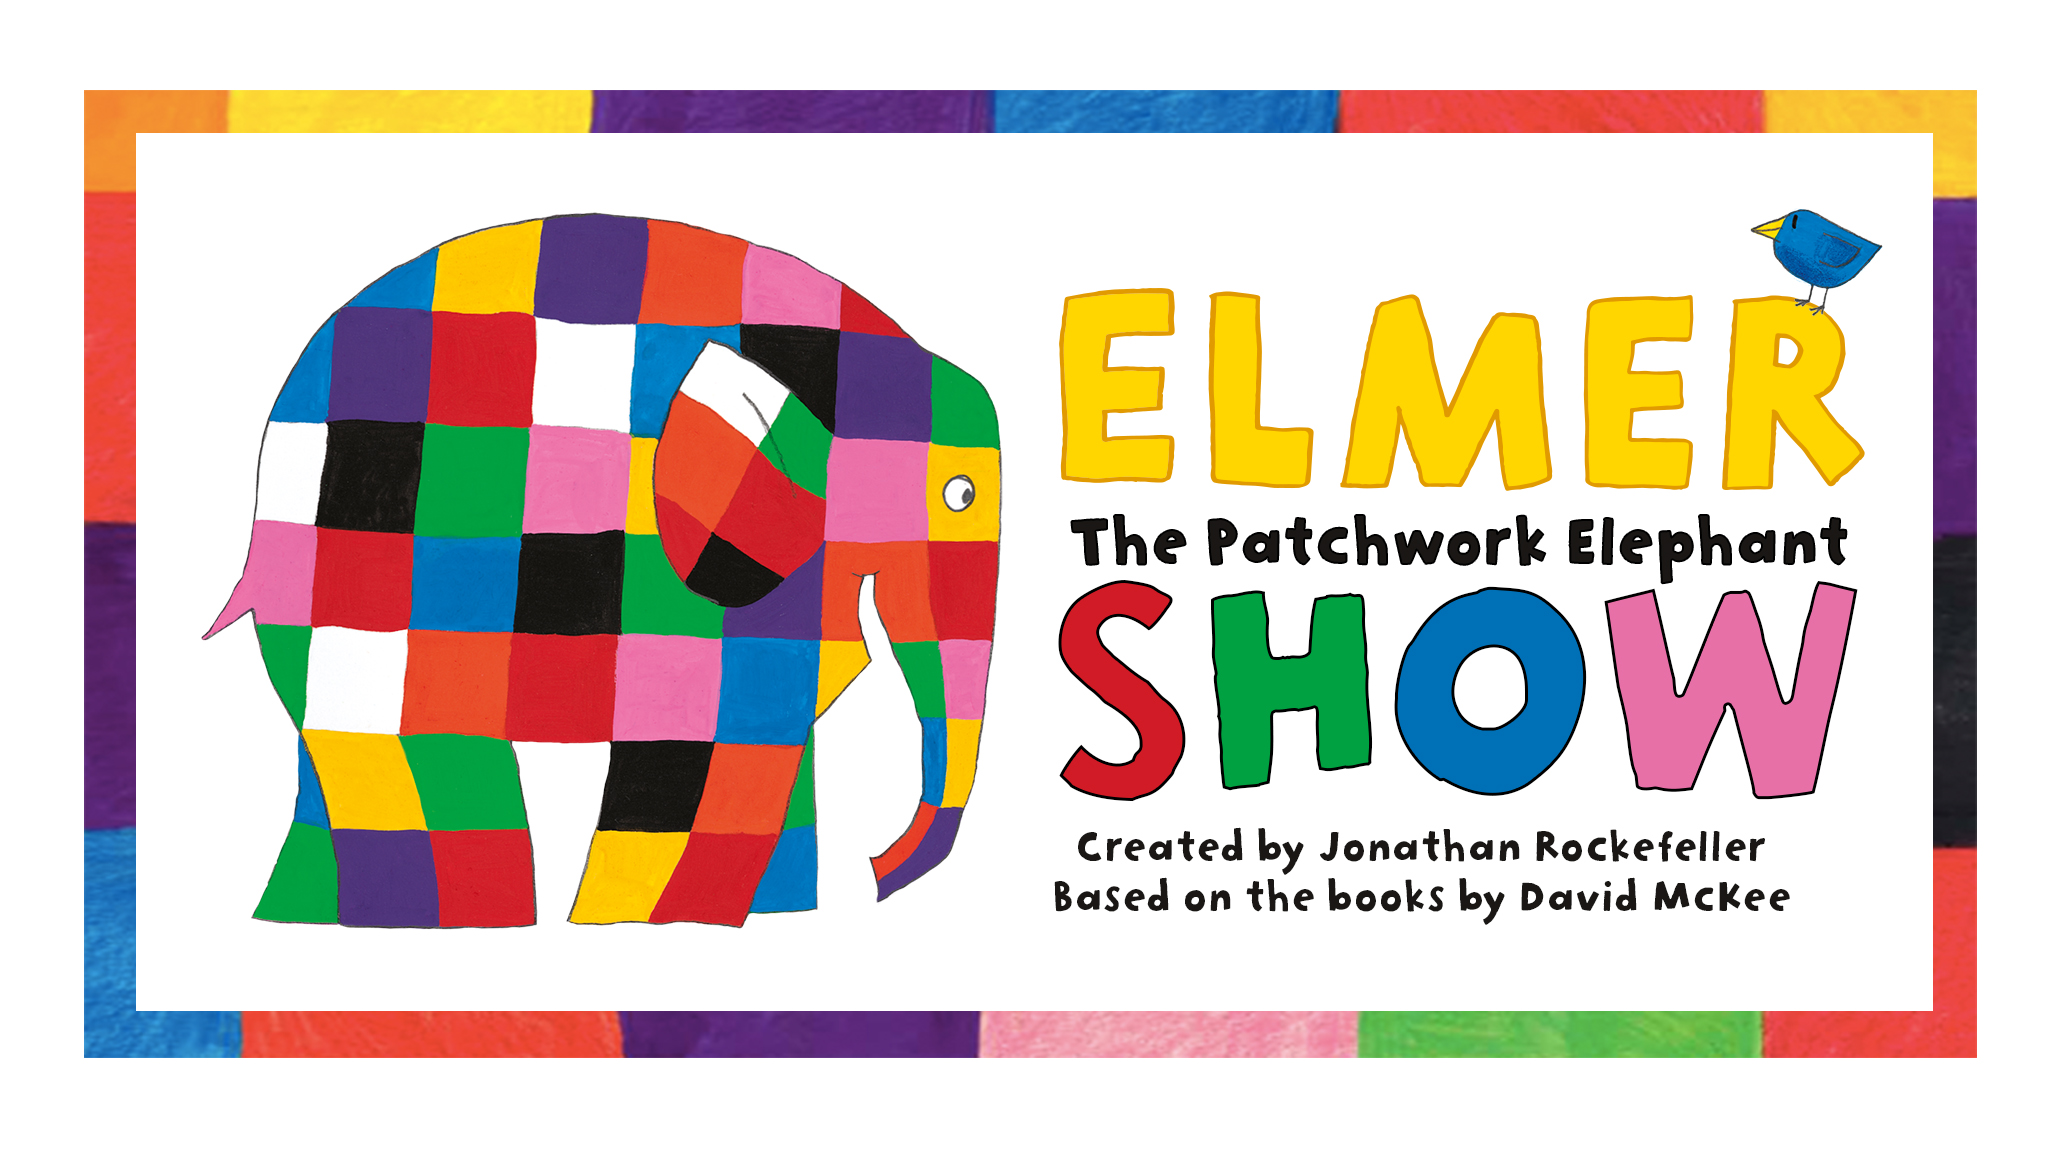 Elmer the Patchwork Elephant - The Show